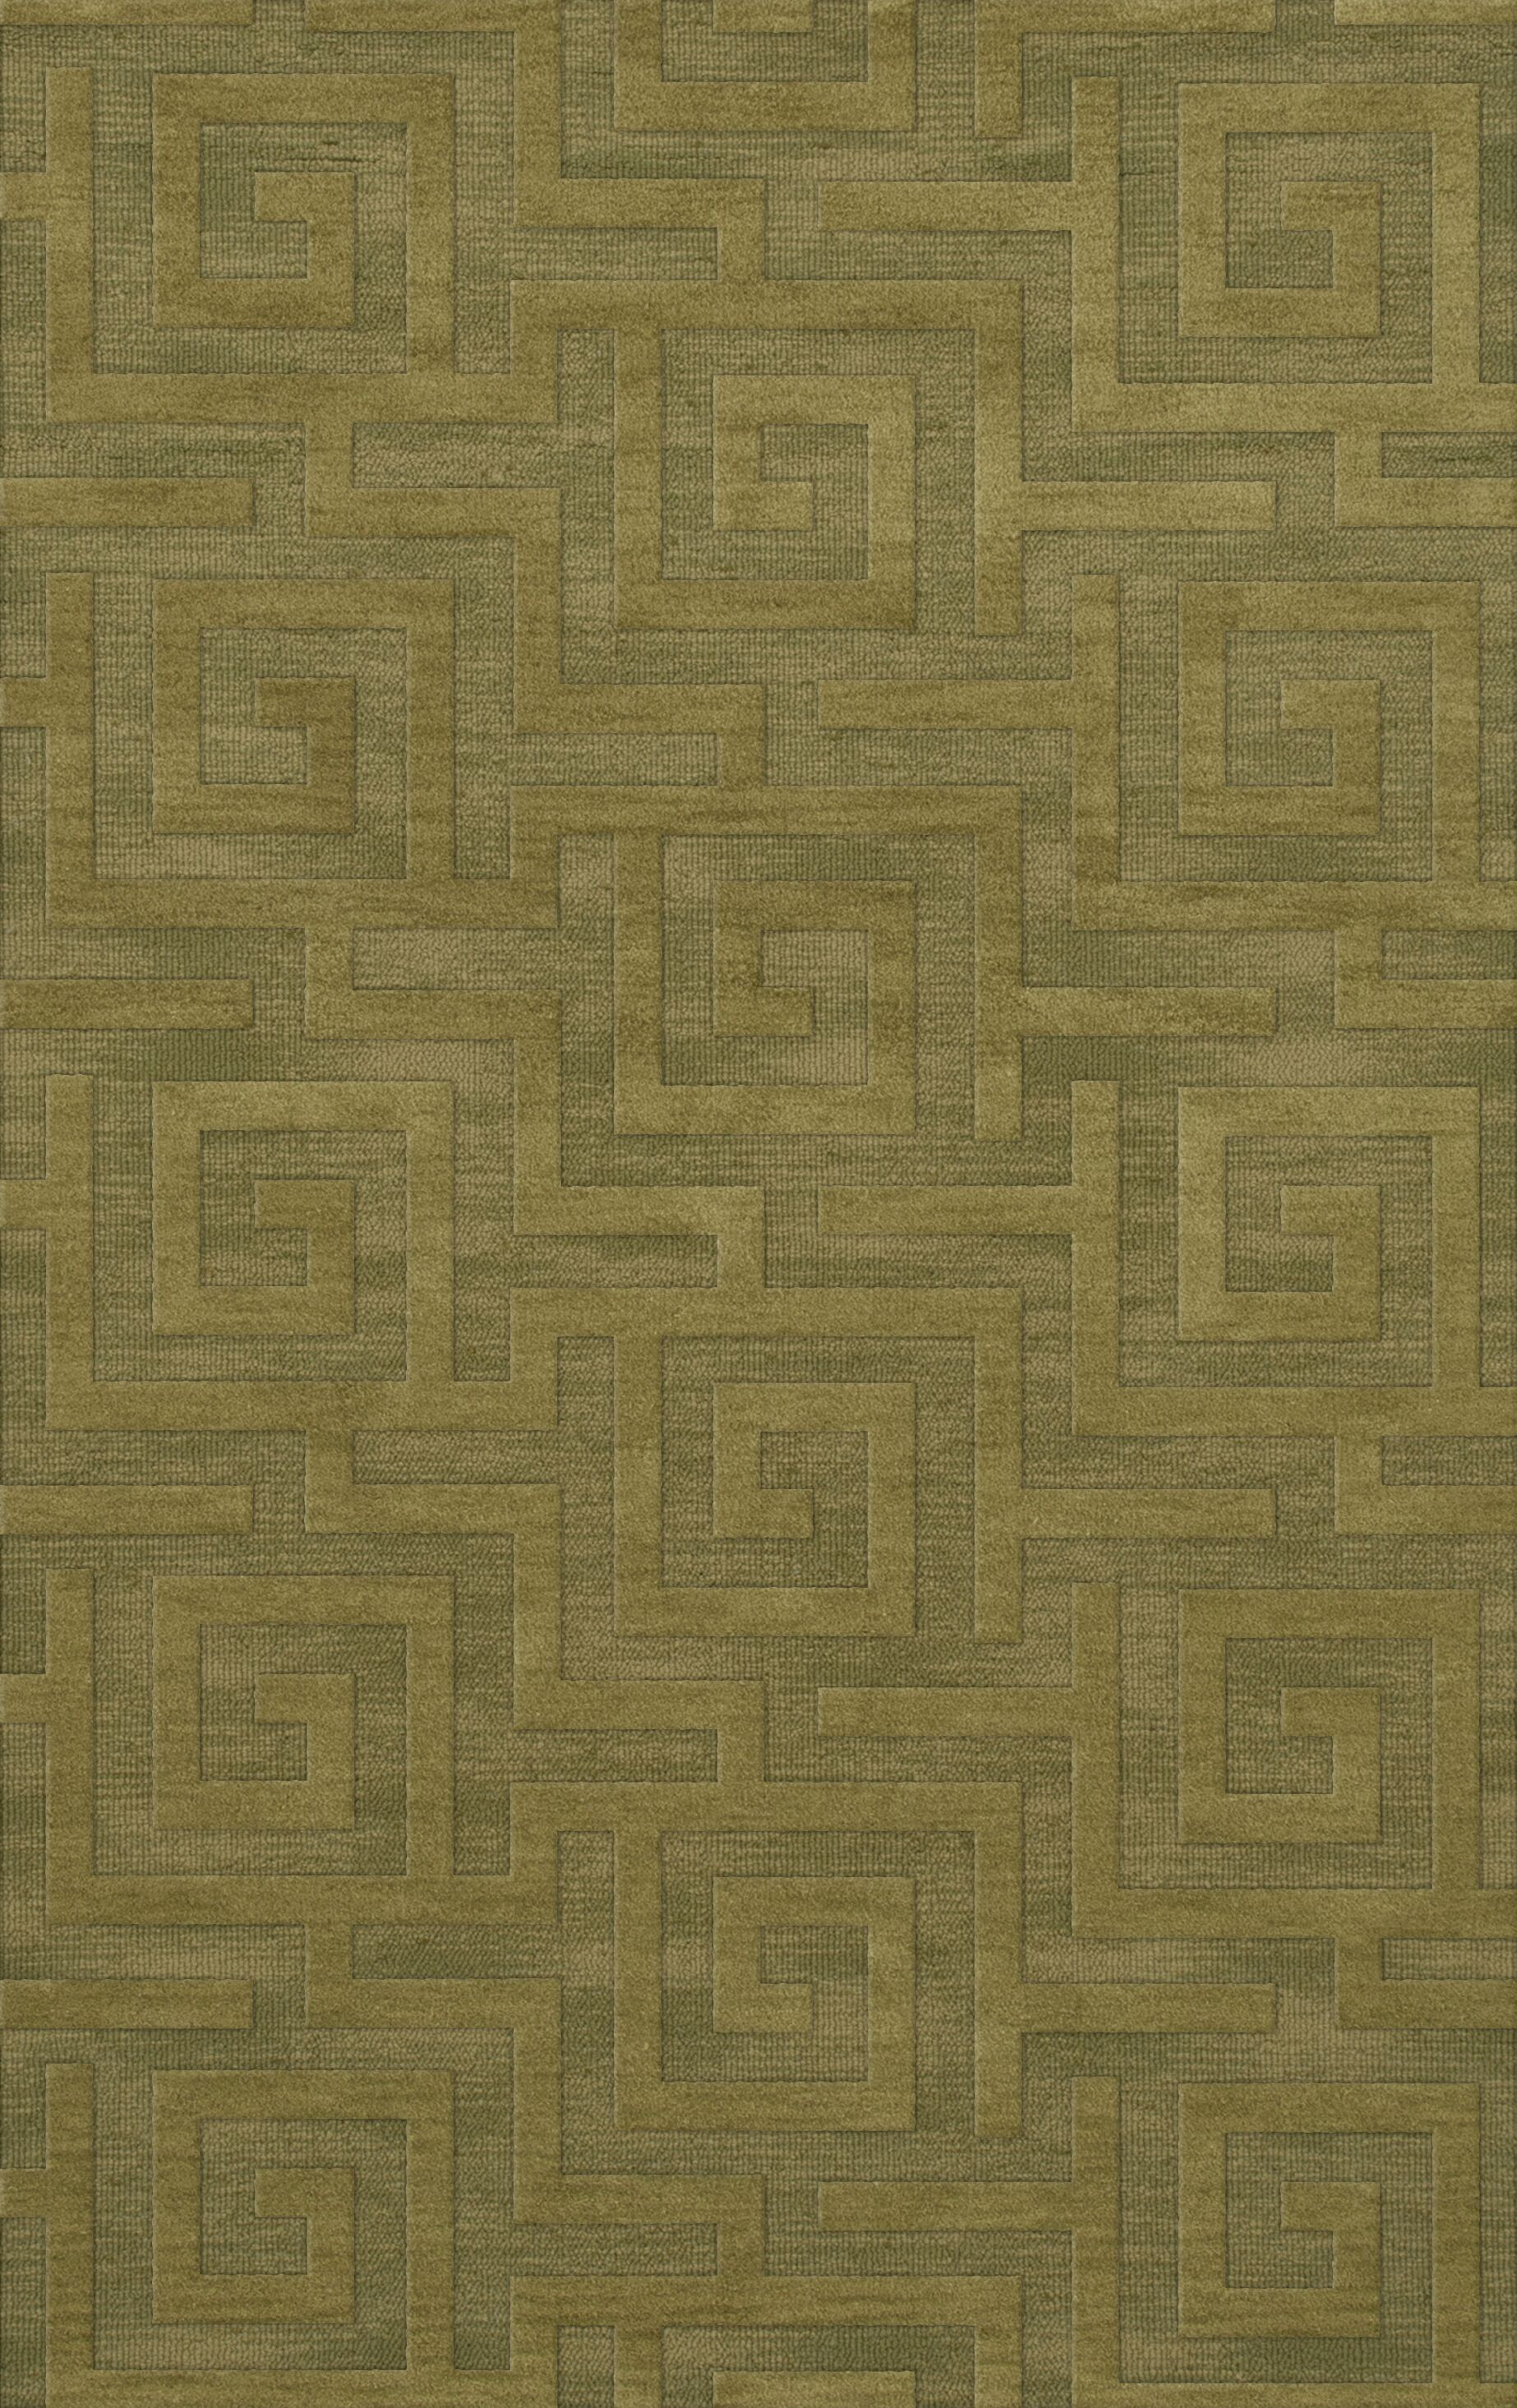 Dover Tufted Wool Pear Area Rug Rug Size: Rectangle 6' x 9'